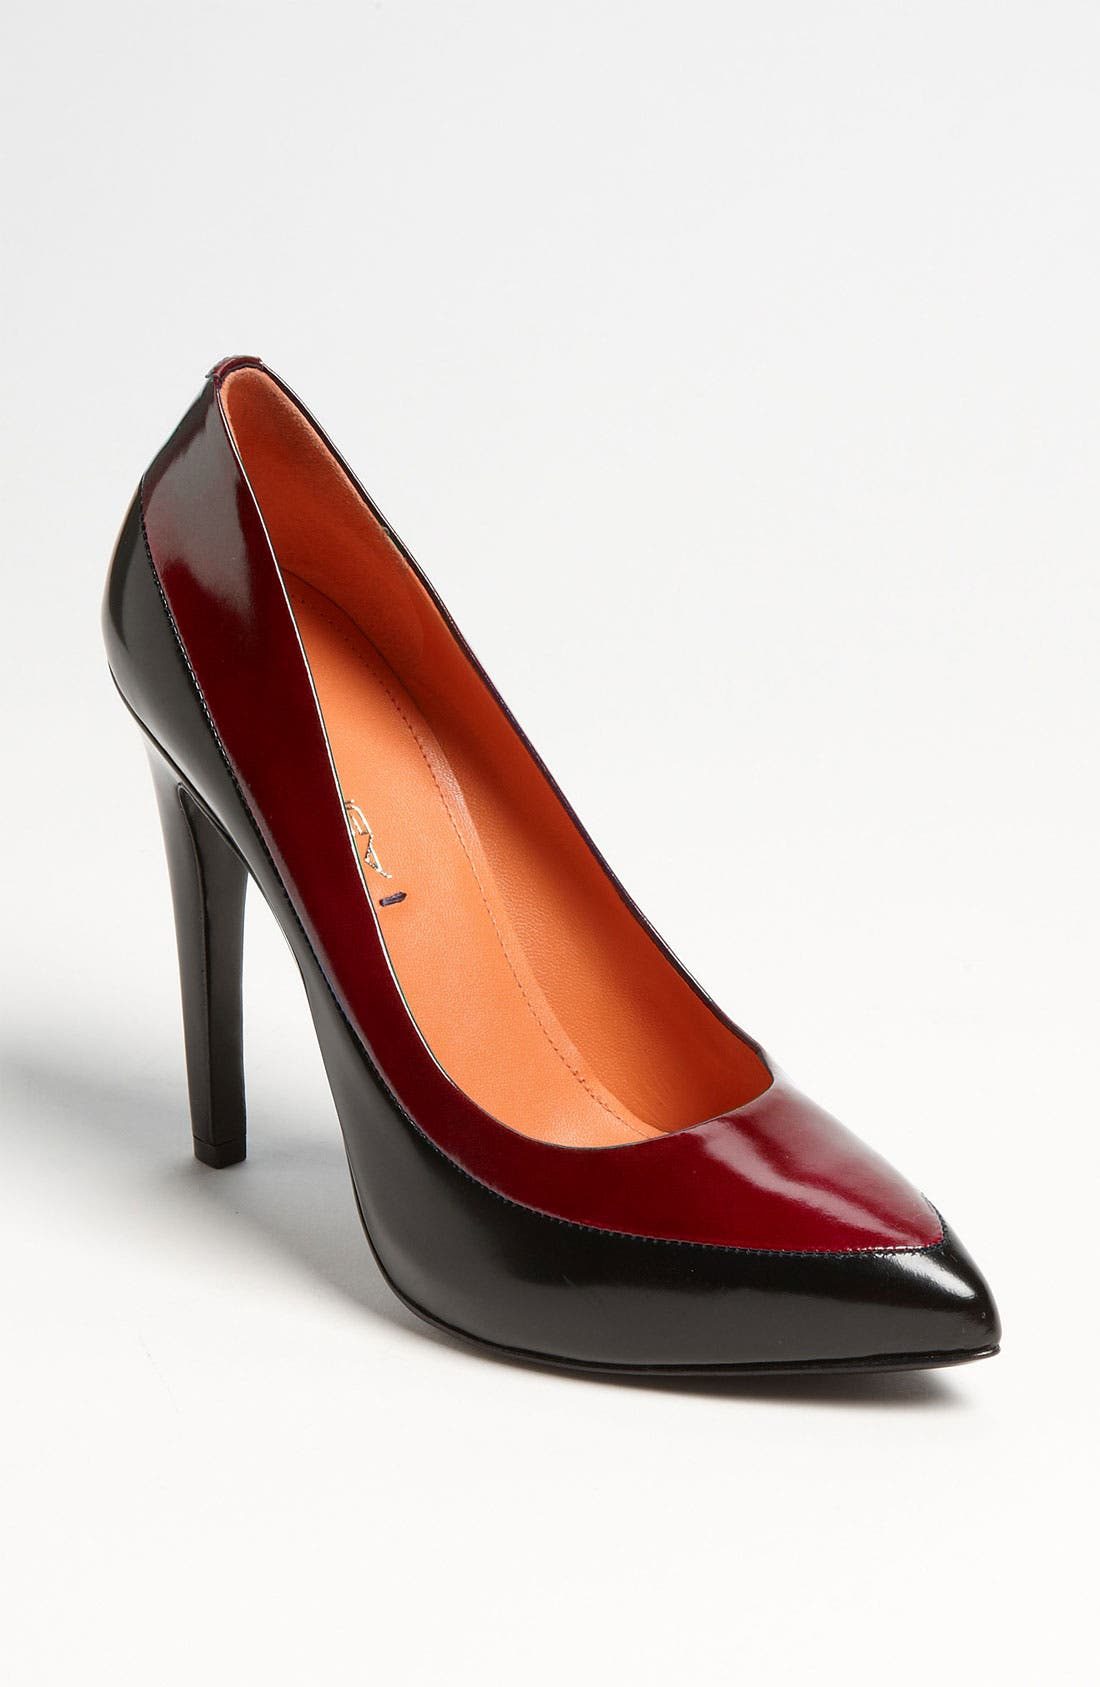 Alternate Image 1 Selected - Via Spiga 'Yardley' Pump (Nordstrom Exclusive)